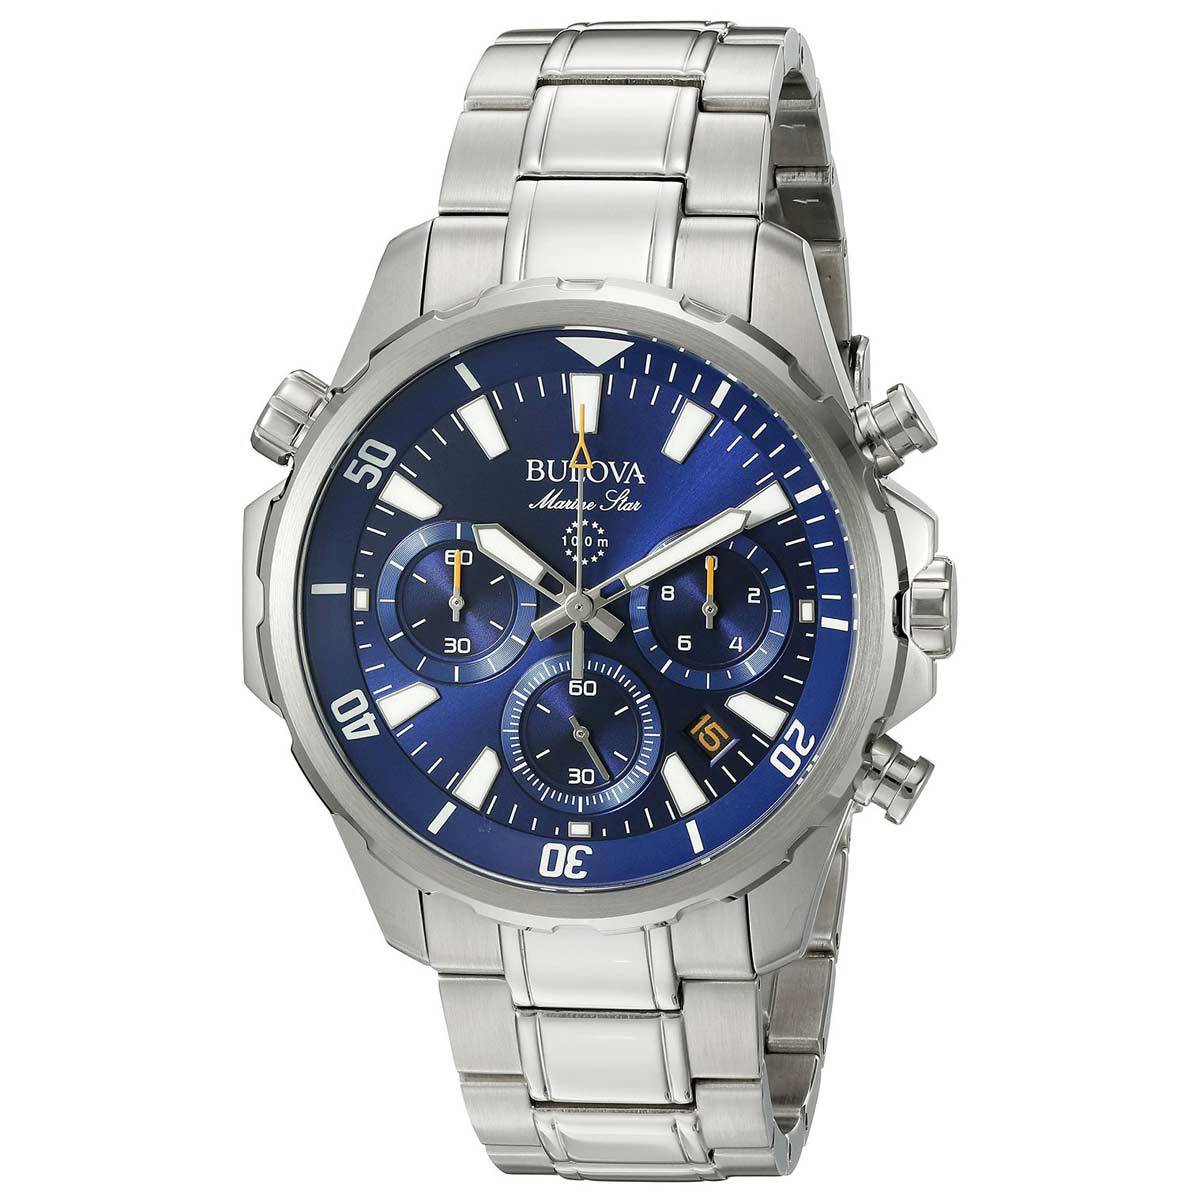 7e0dabb12 Details about Bulova Mens Stainless Steel Marine Star Chronograph Watch  96B256